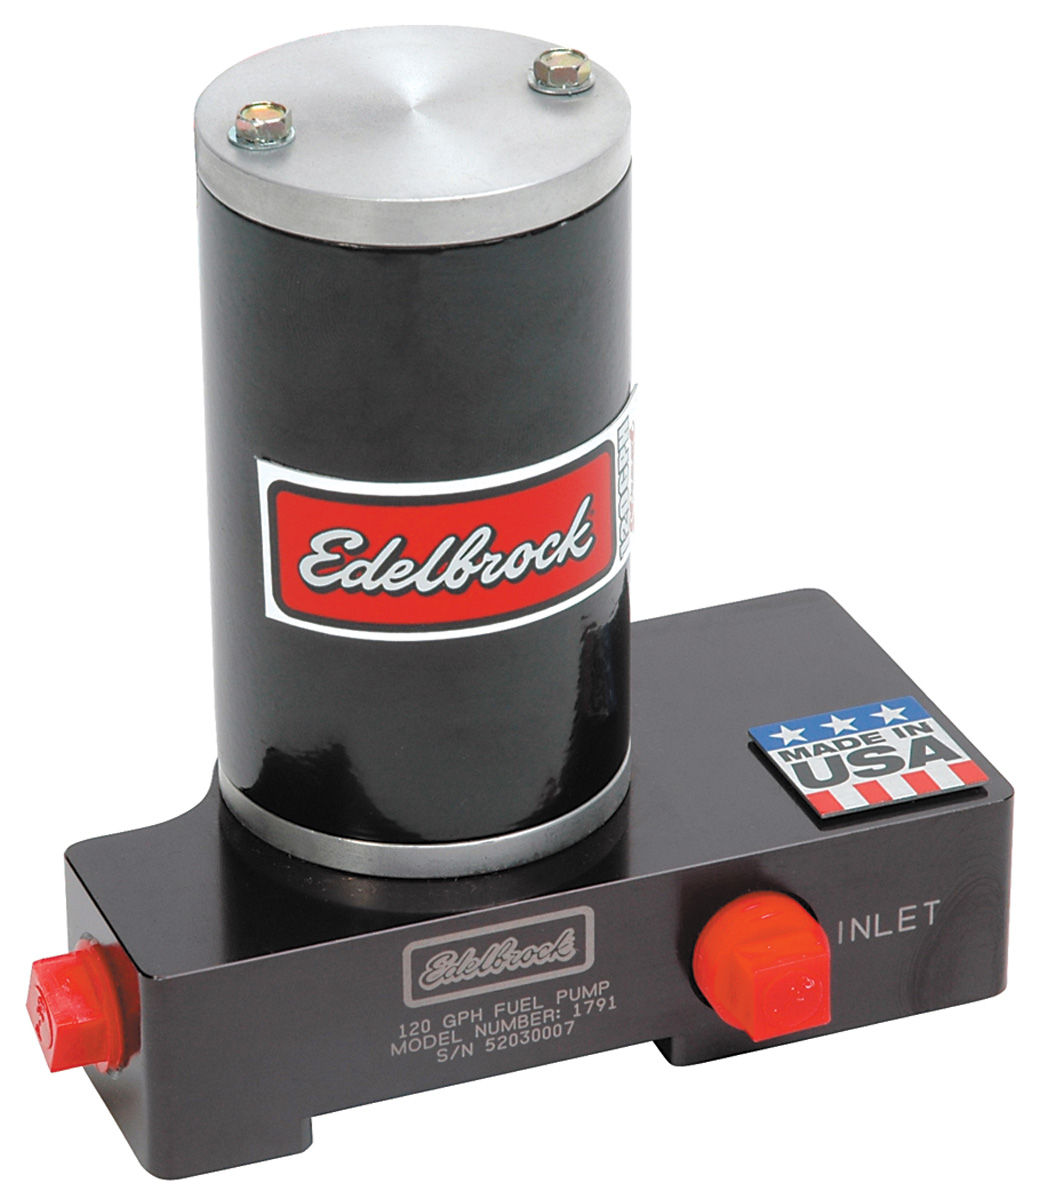 Fuel Pump, Electric, Edelbrock, 120 GPH